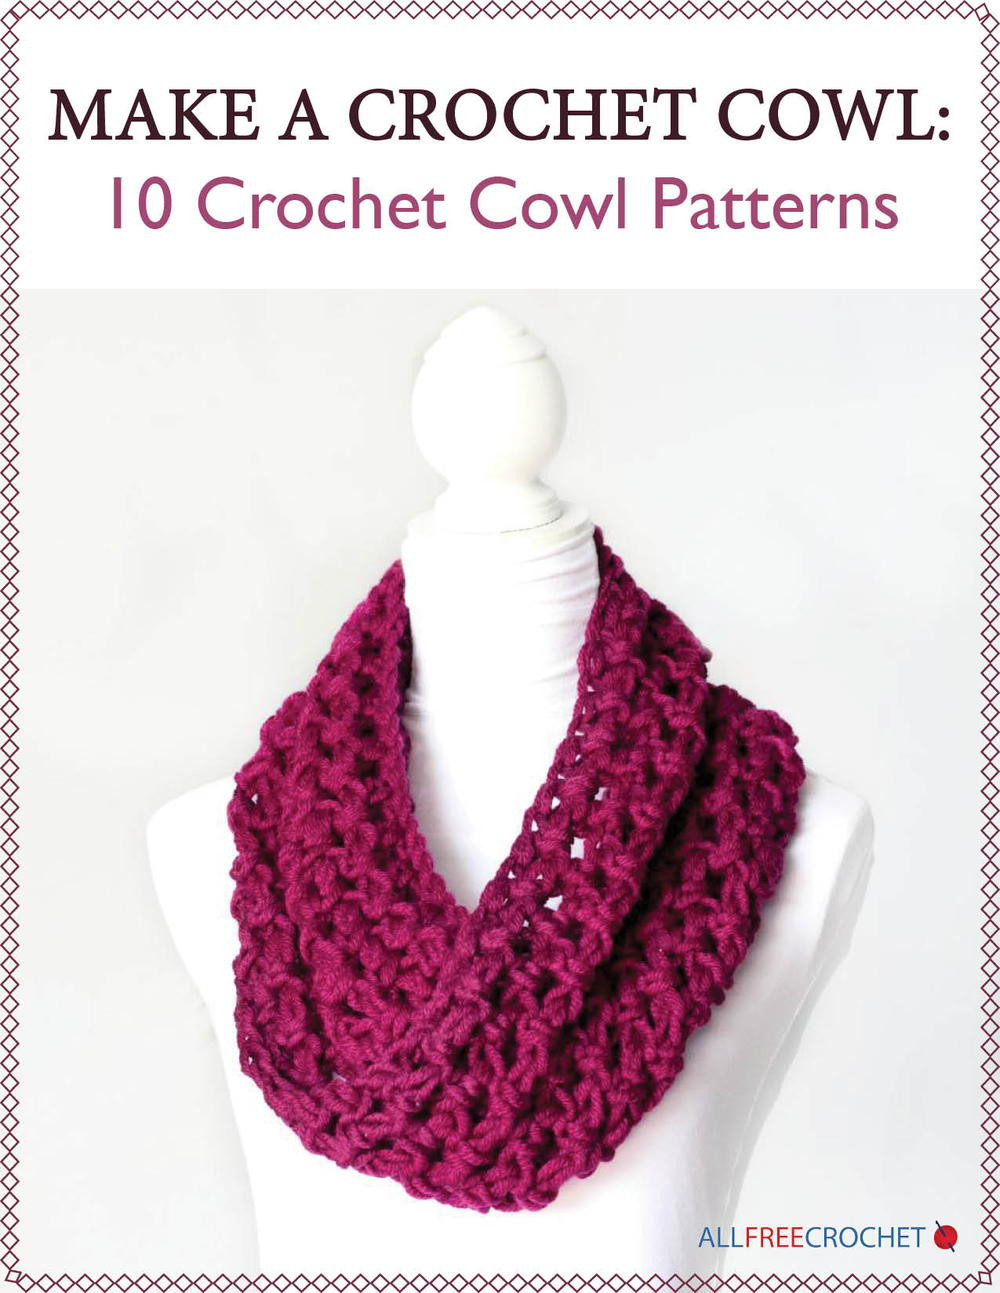 Make a Crochet Cowl 10 Crochet Cowl Patterns free eBook